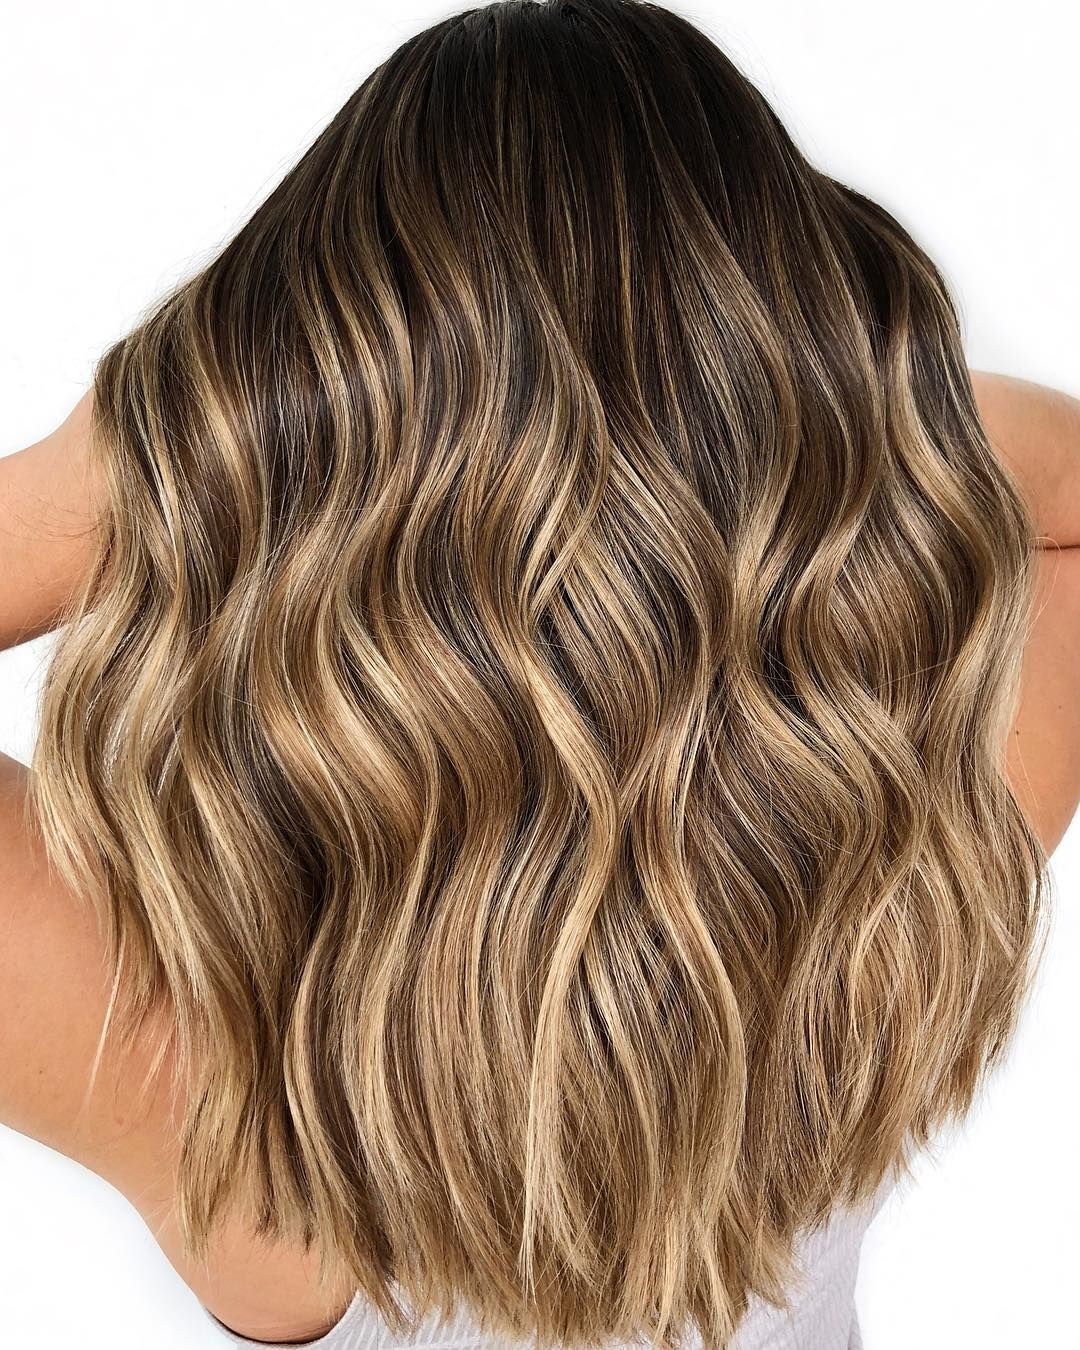 24 Gorgeous Balayage Hair Color Idea,Beachy balayage hair color ##balayage #blondebalayage #hairpainting #hairpainters #bronde #brondebalayage #highlights #ombrehair